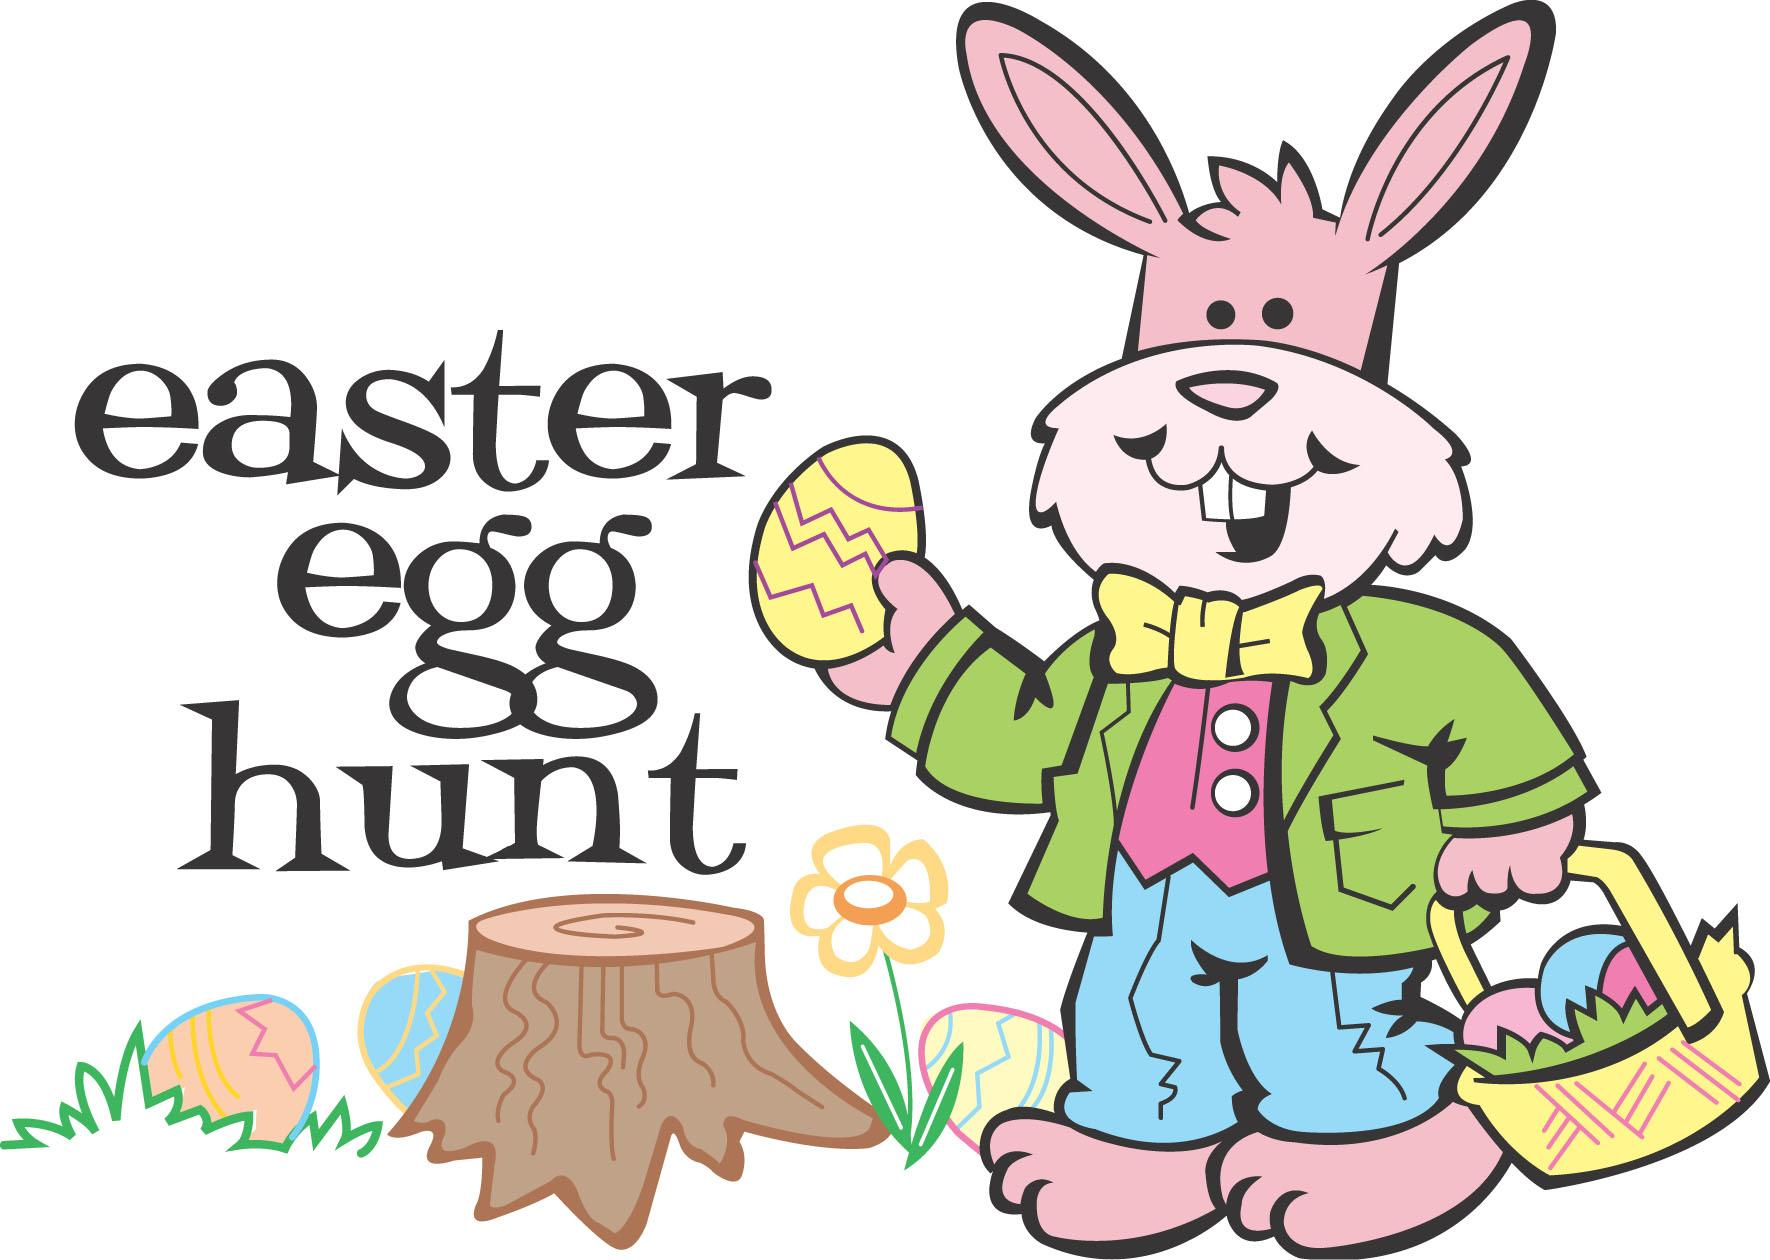 Easter Egg Hunt at T-o-M 5 Tickets in New Britain, CT, United States for Easter Egg Hunt Clipart  545xkb